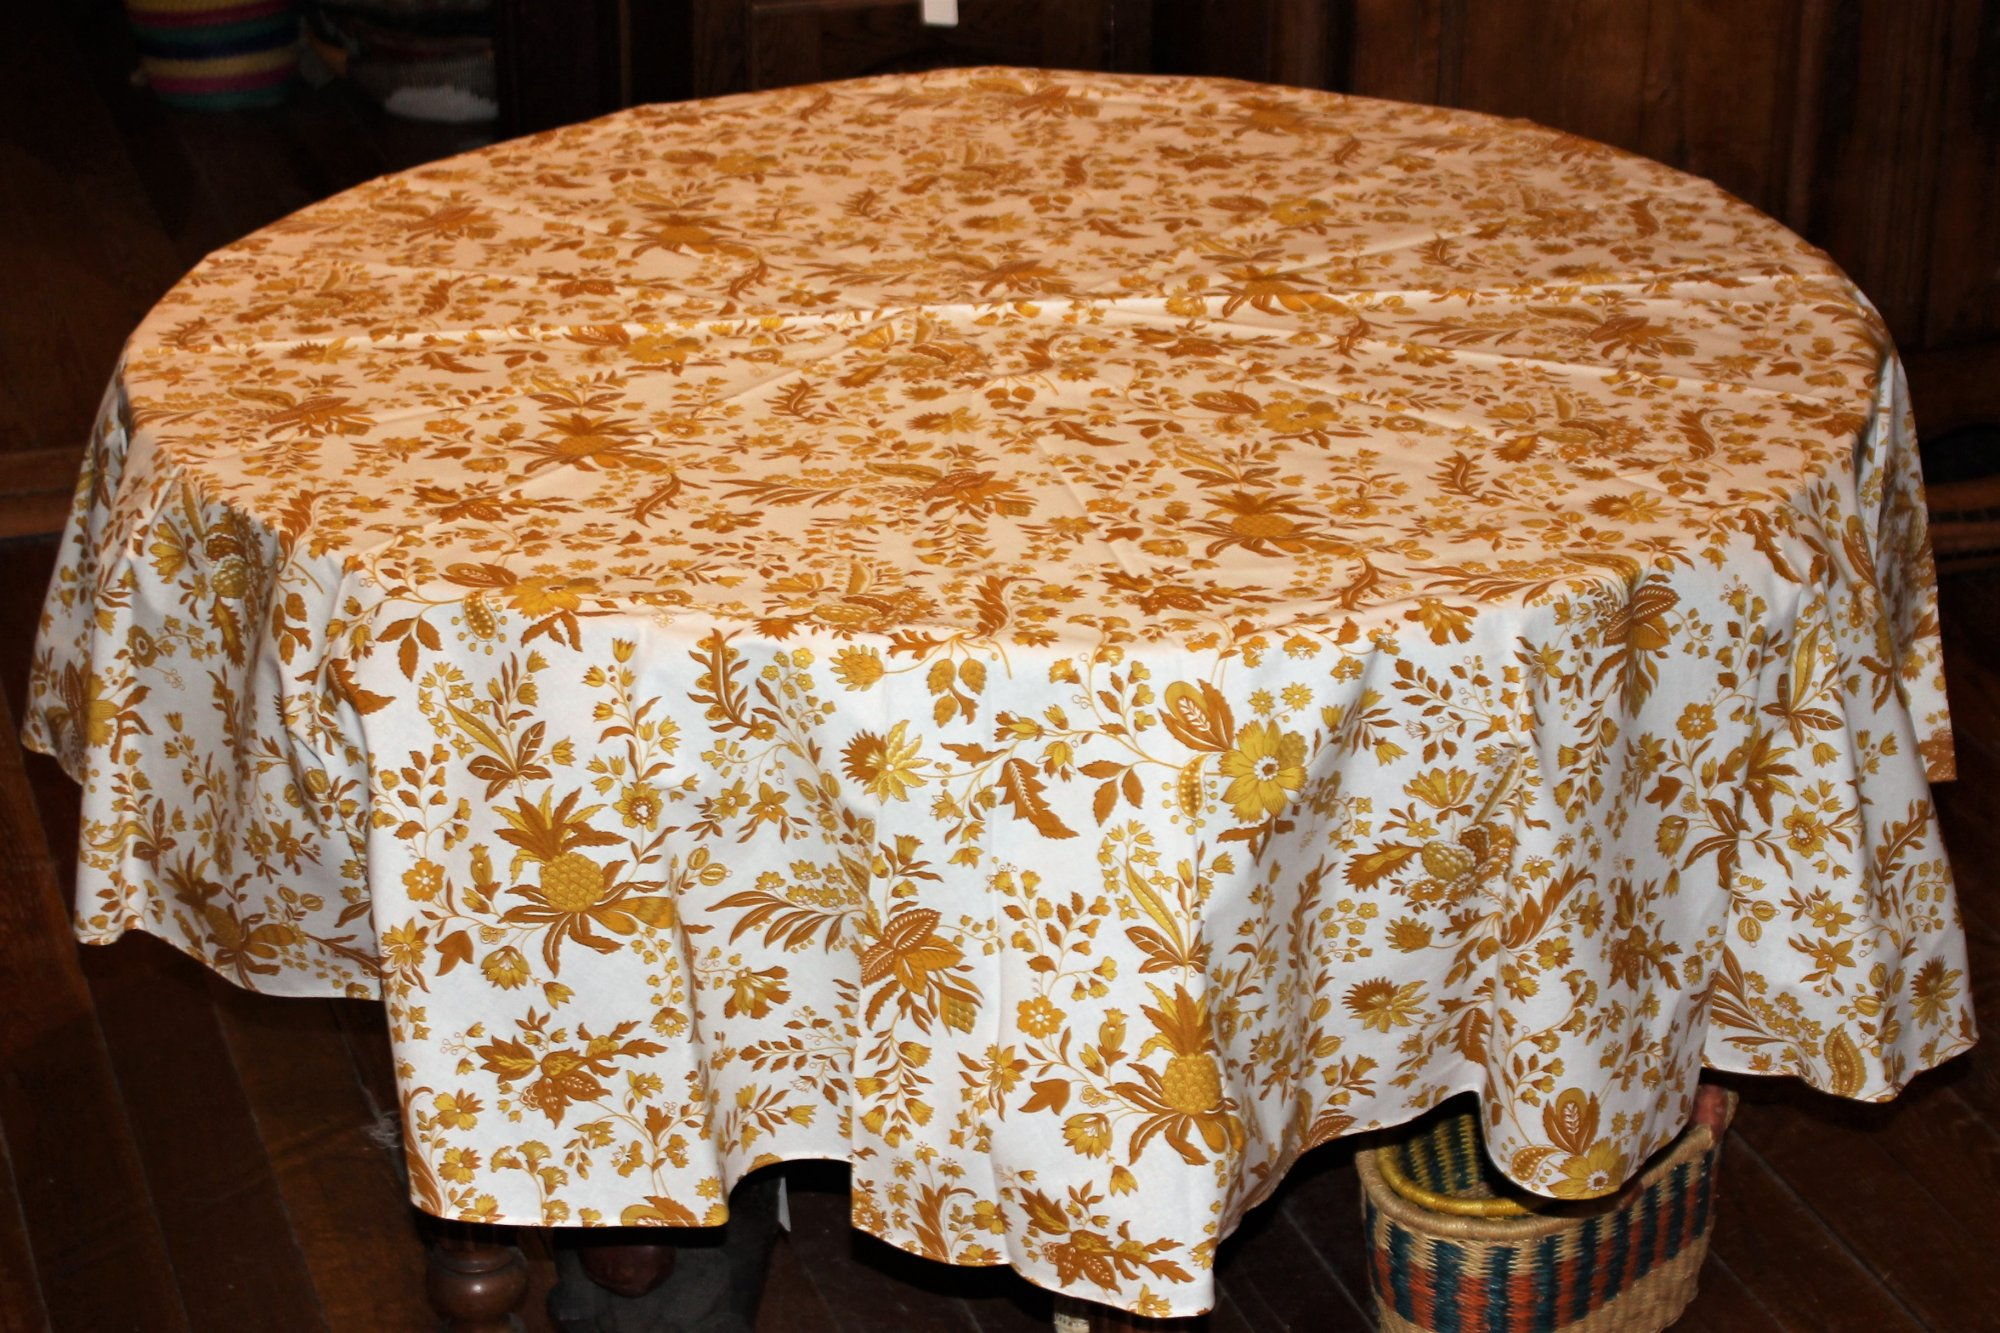 70 French Acrylic-Coated Round Tablecloth Versailles (Gold)